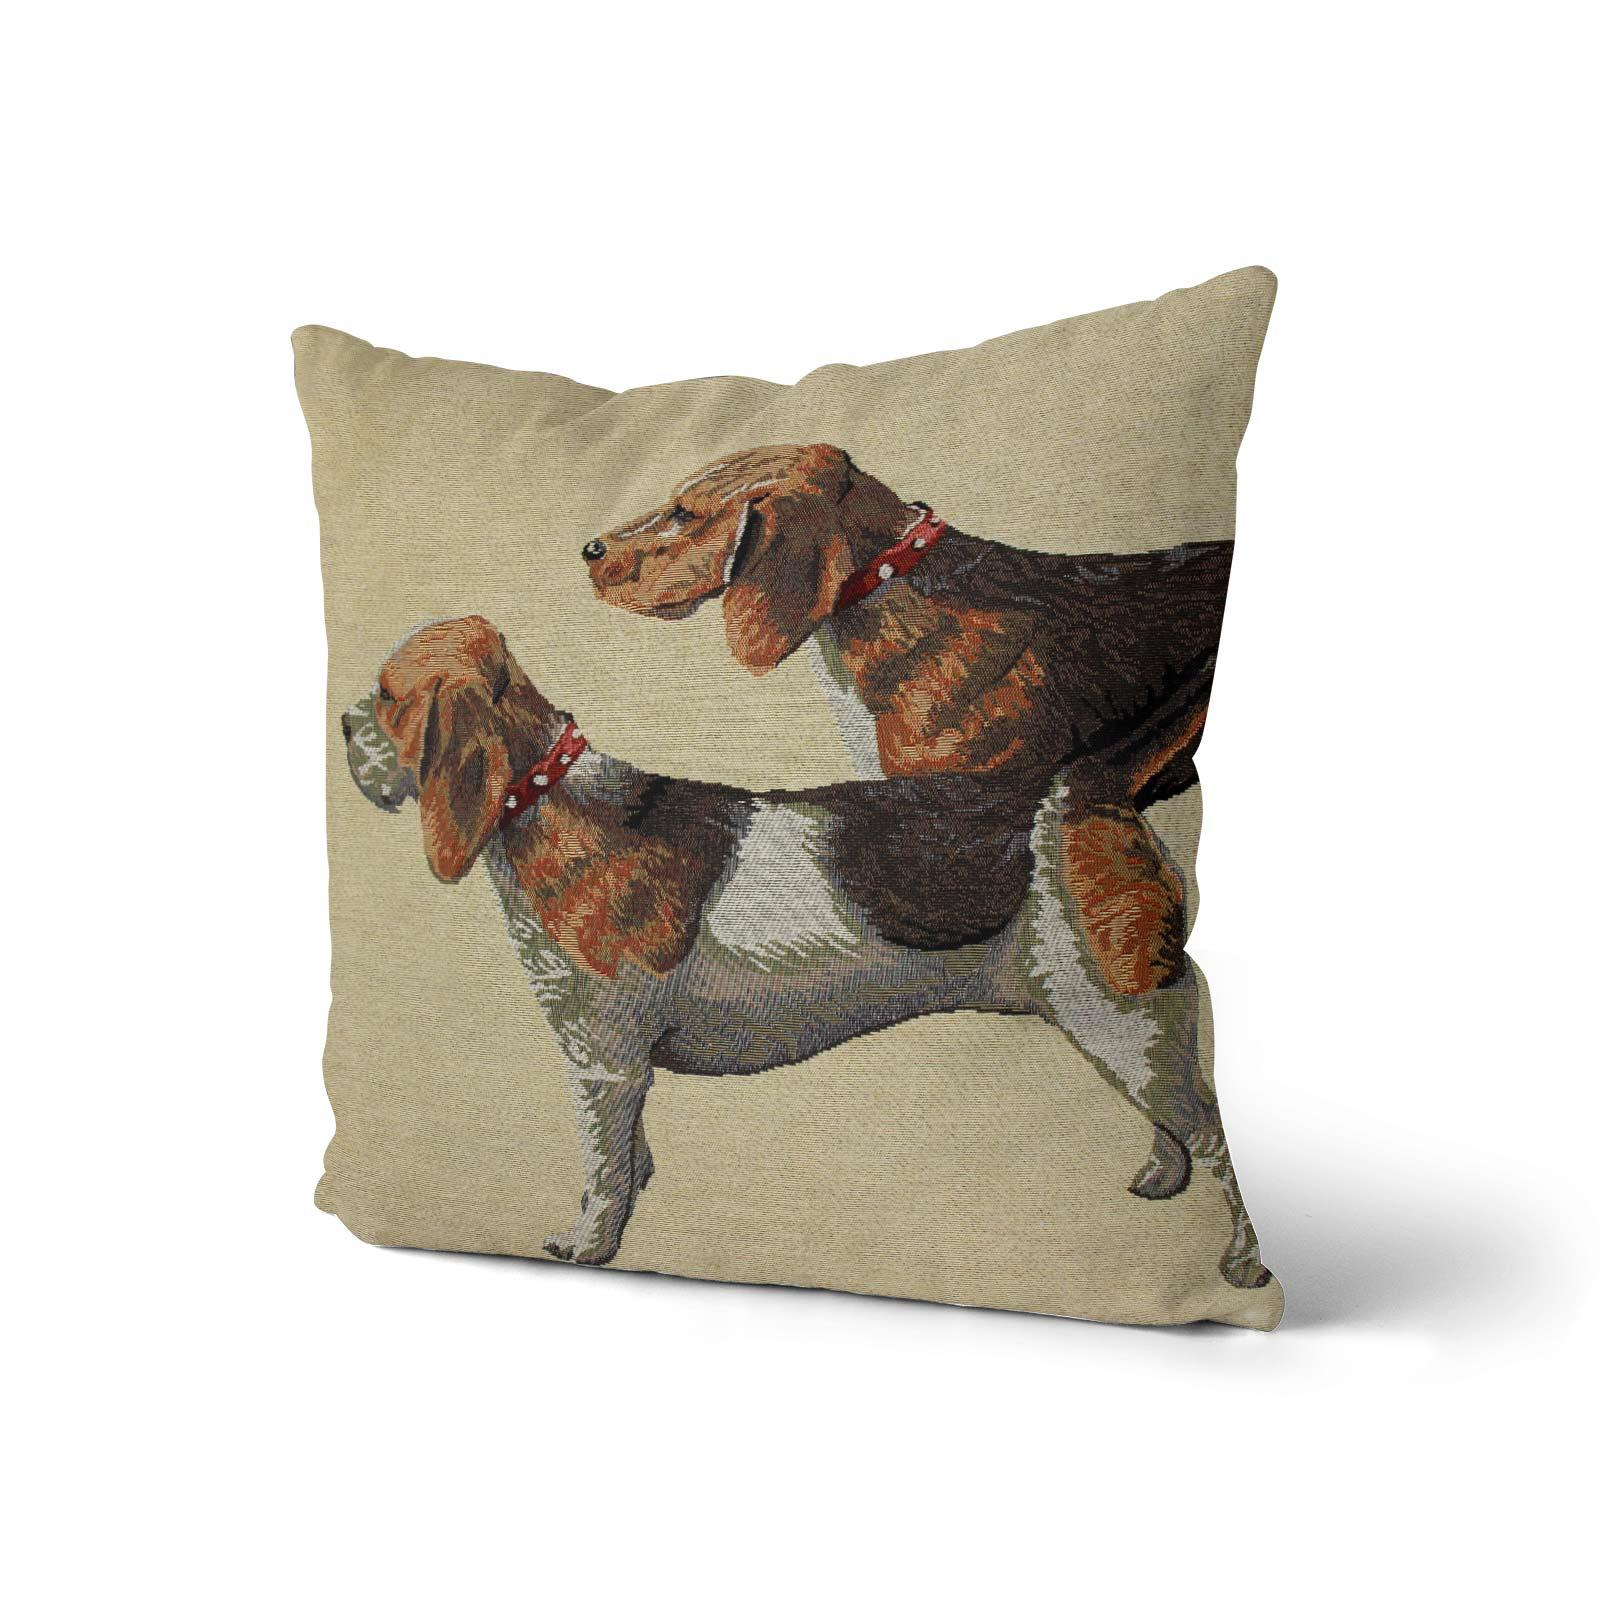 Tapestry-Cushion-Covers-Vintage-Pillow-Cover-Collection-18-034-45cm-Filled-Cushions thumbnail 79